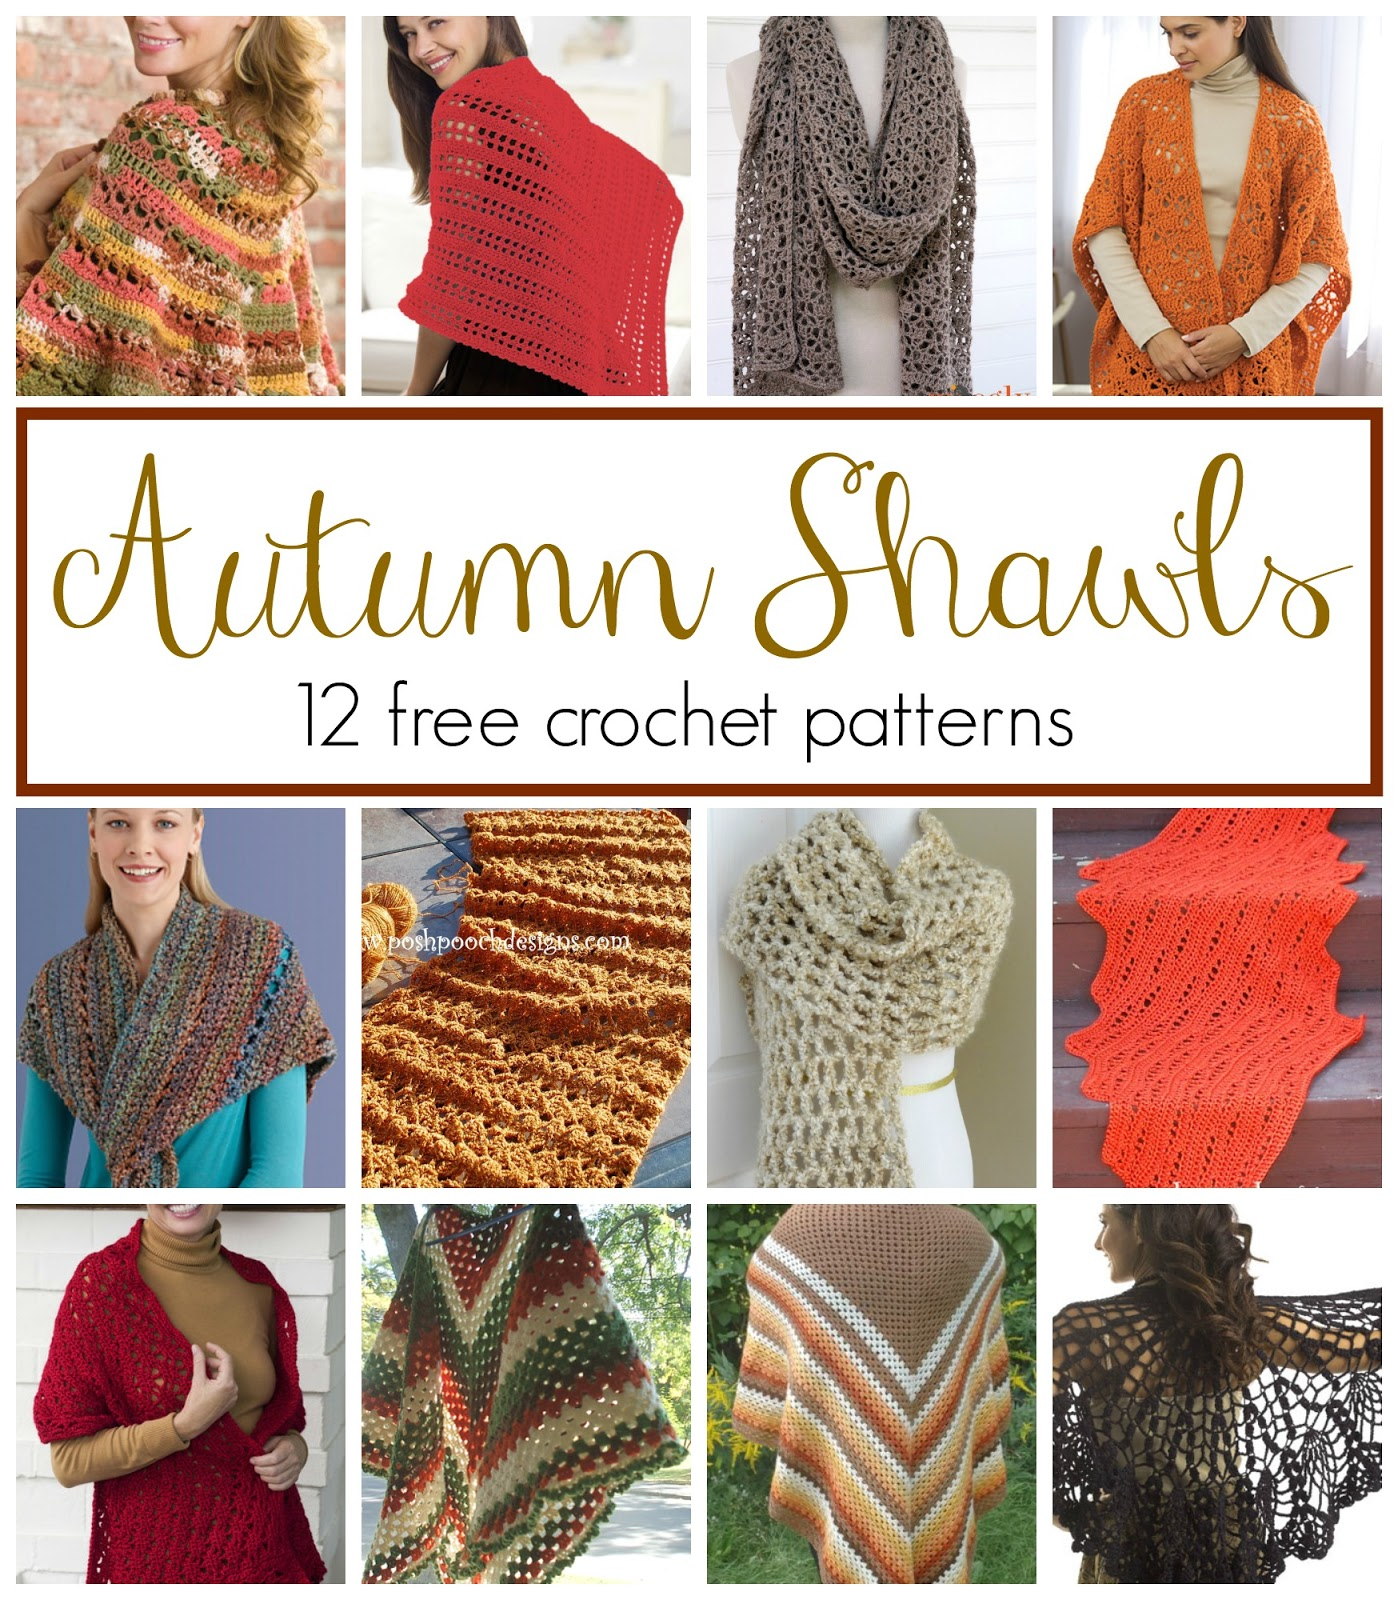 Fall Crochet Patterns : Fiber Flux: Autumn Shawls...12 Free Crochet Patterns